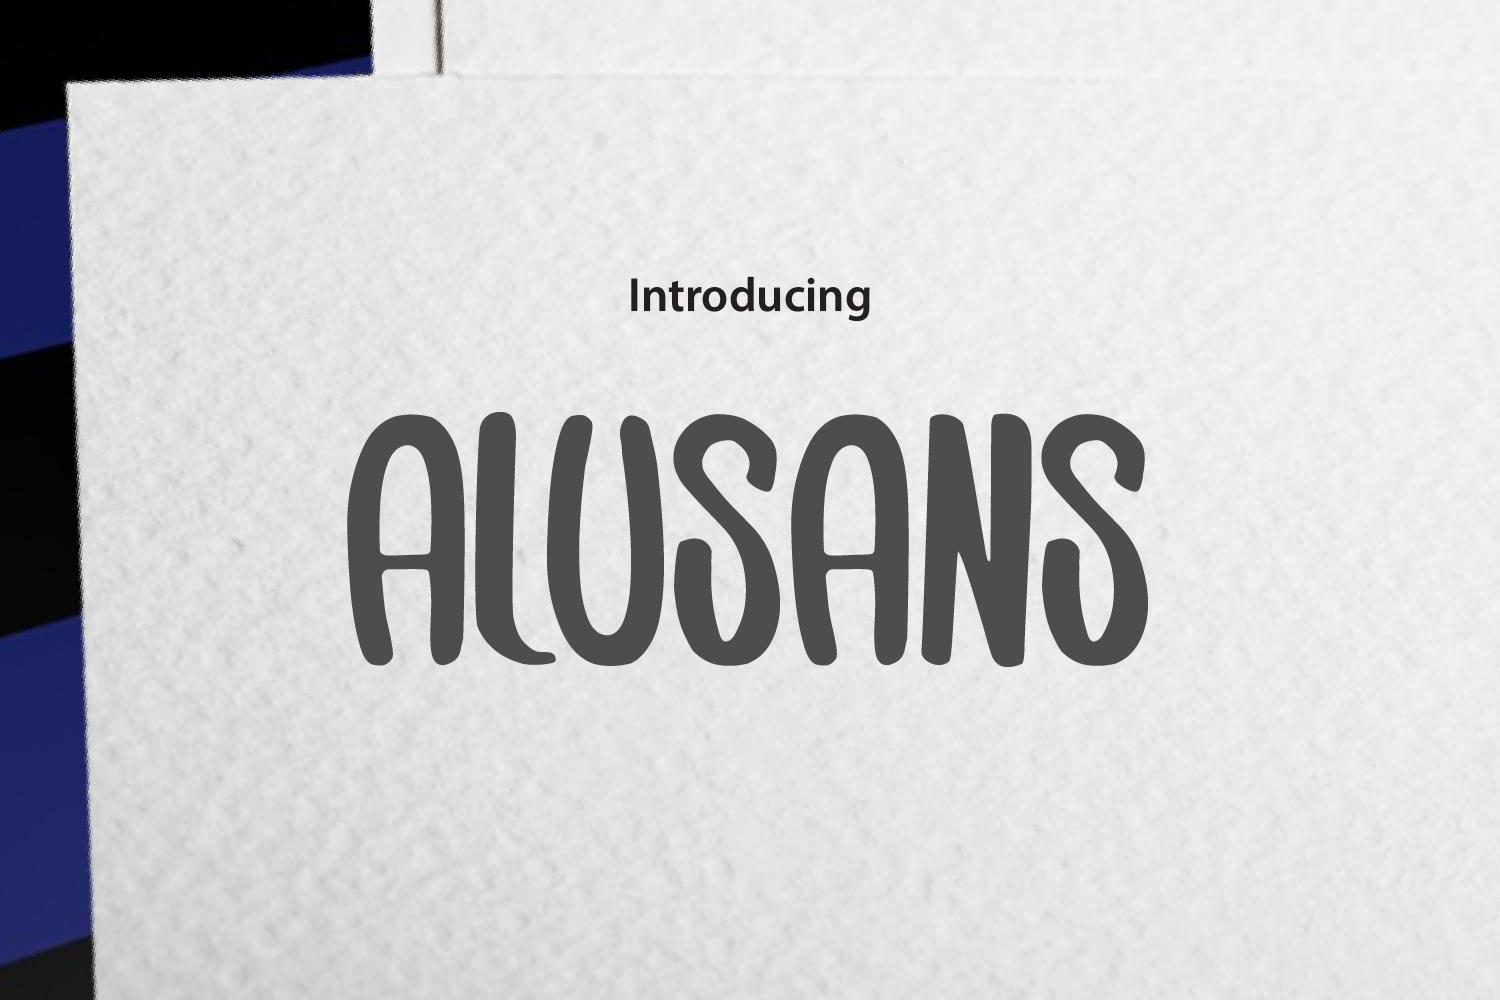 Alusans example image 1